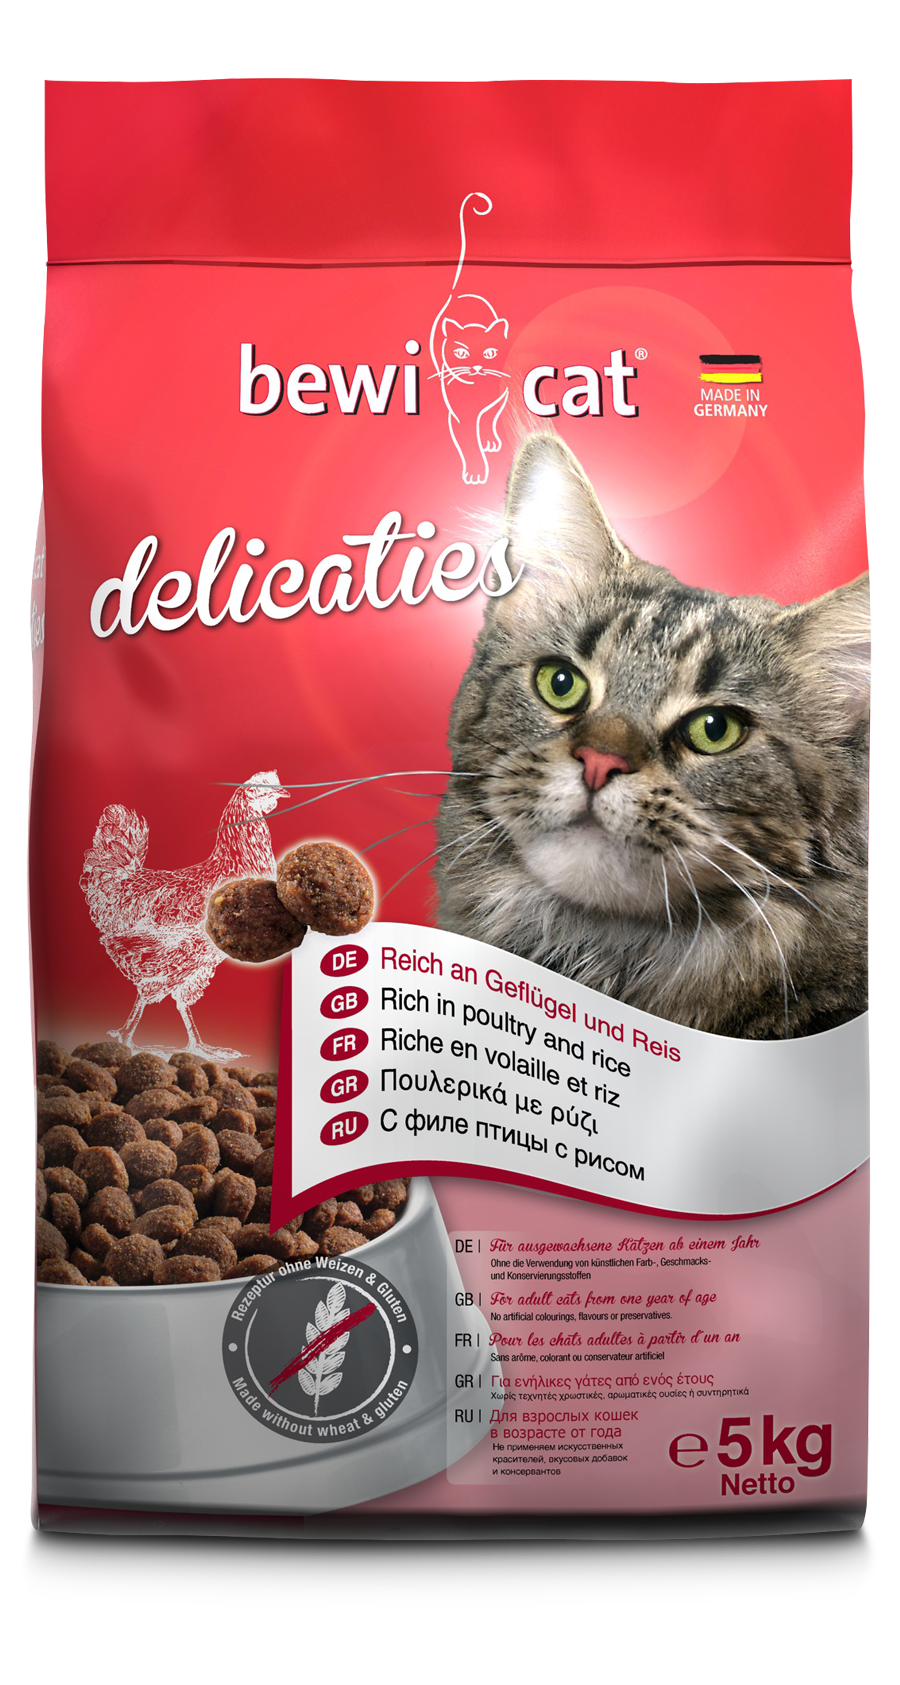 bewi cat® delicaties